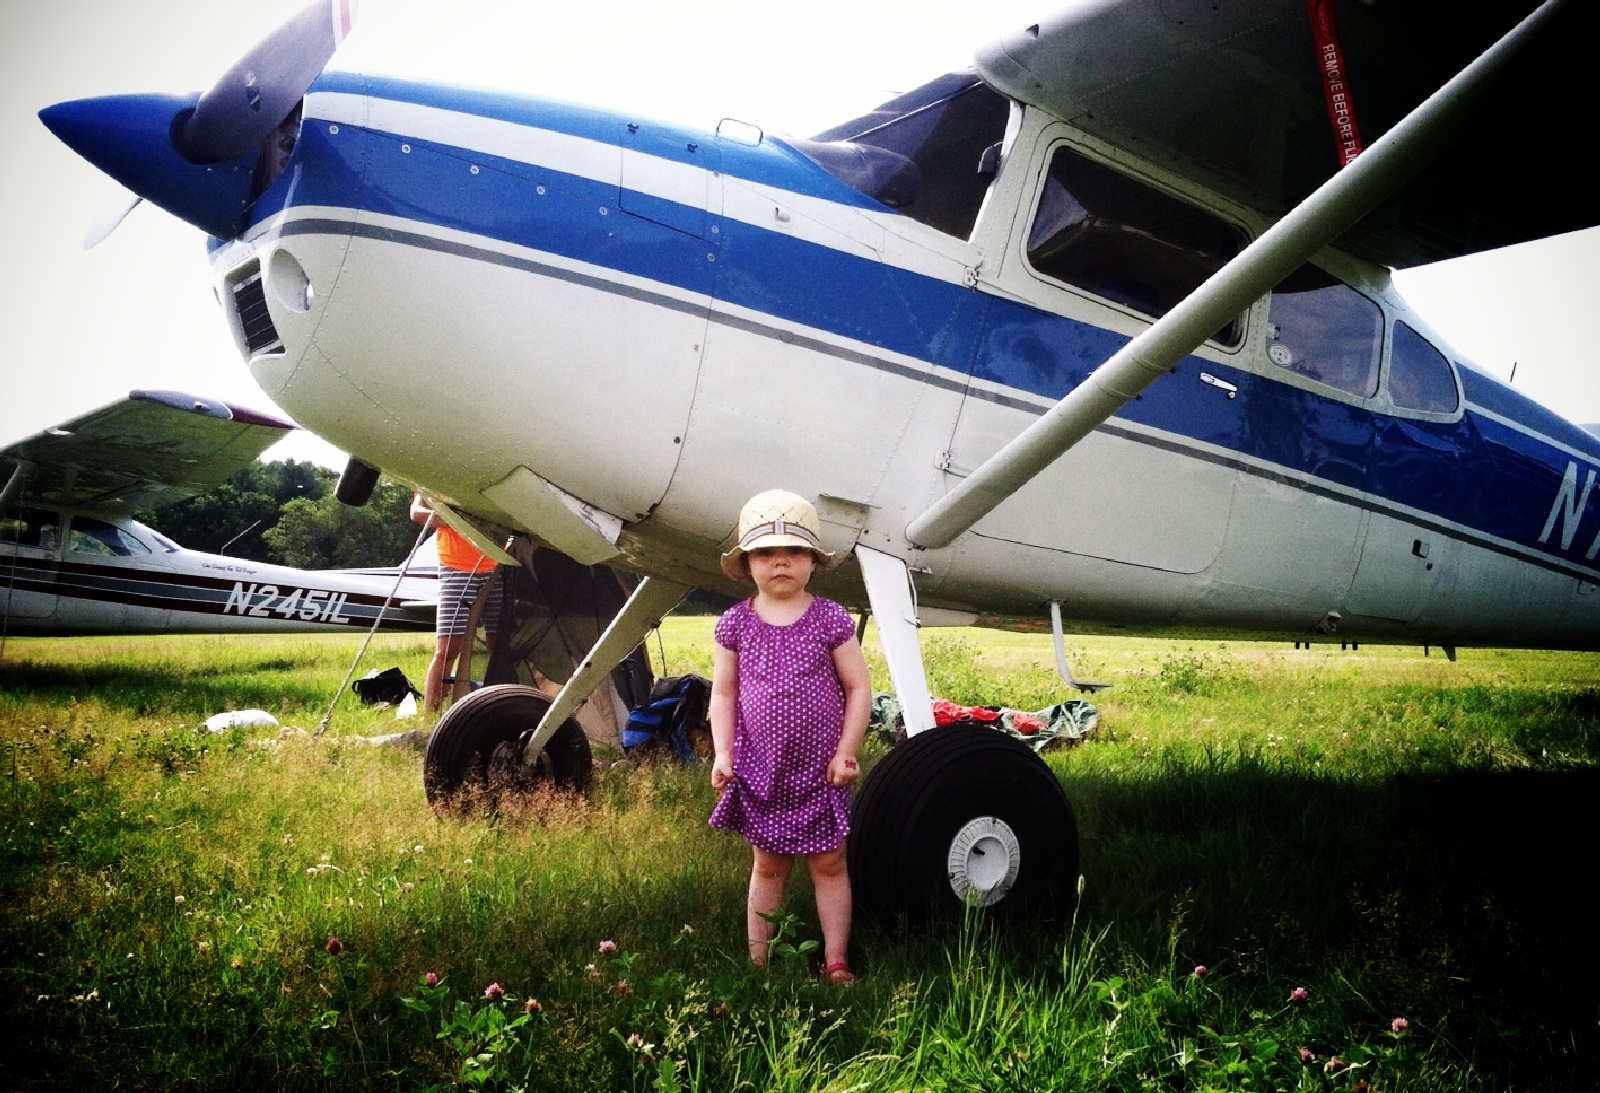 Field trips to airports. Amelia Earhart in the making.